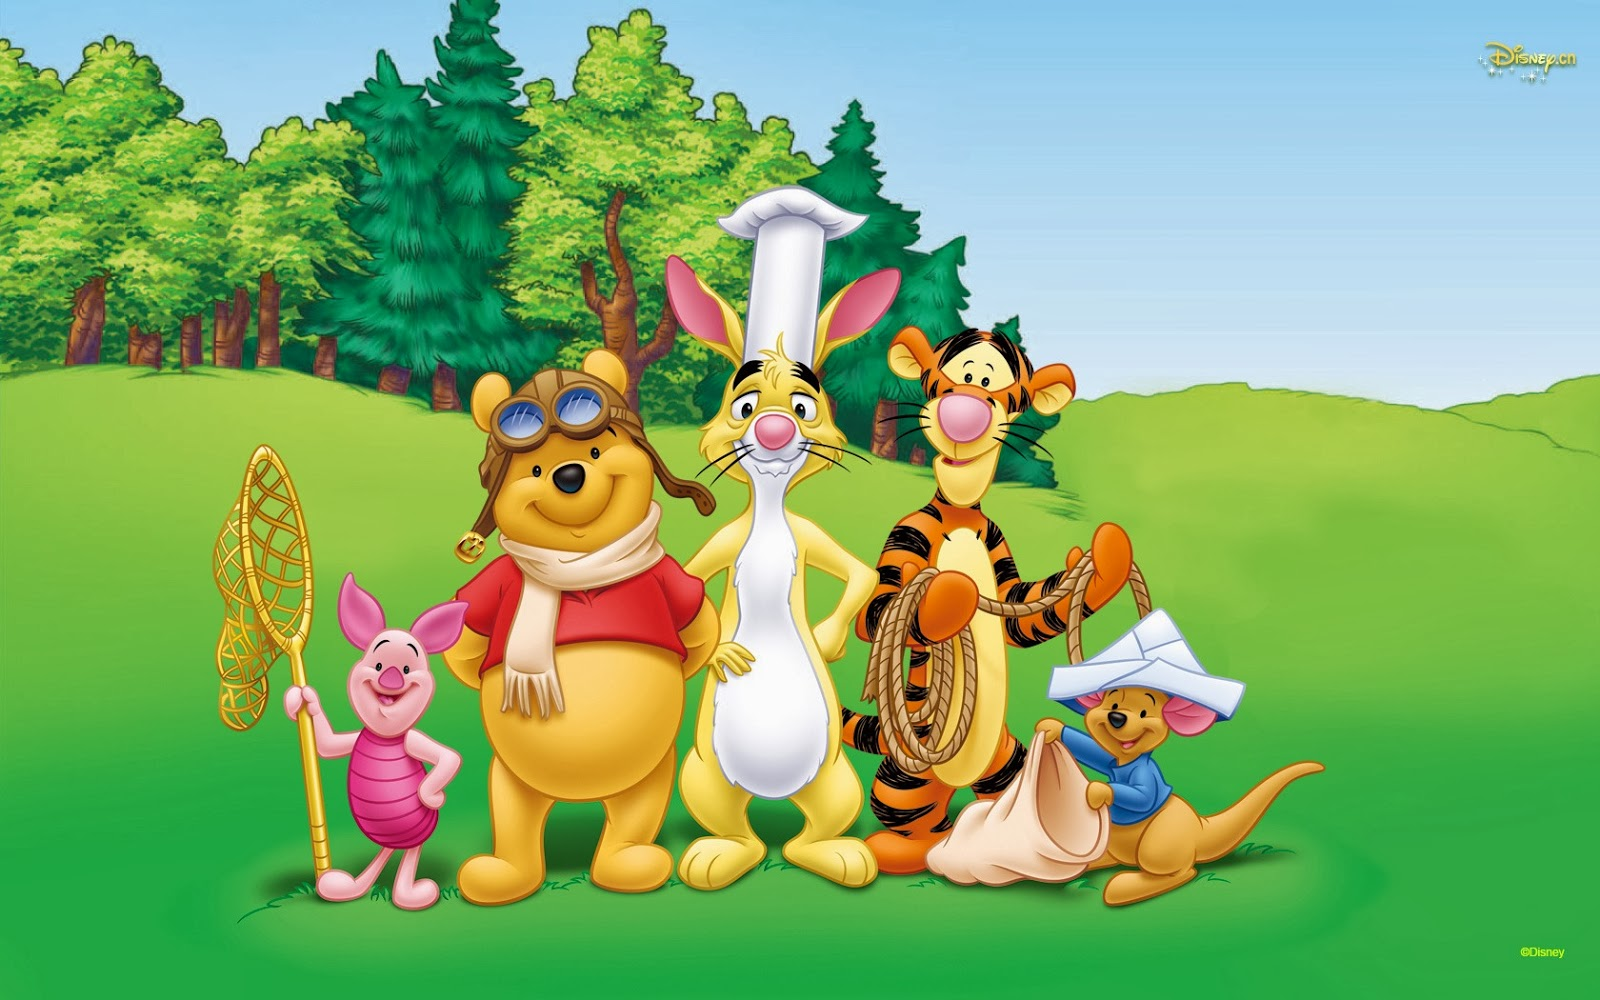 One Hundred Wallpaper Funny Winnie The Pooh Wallpapers Hd